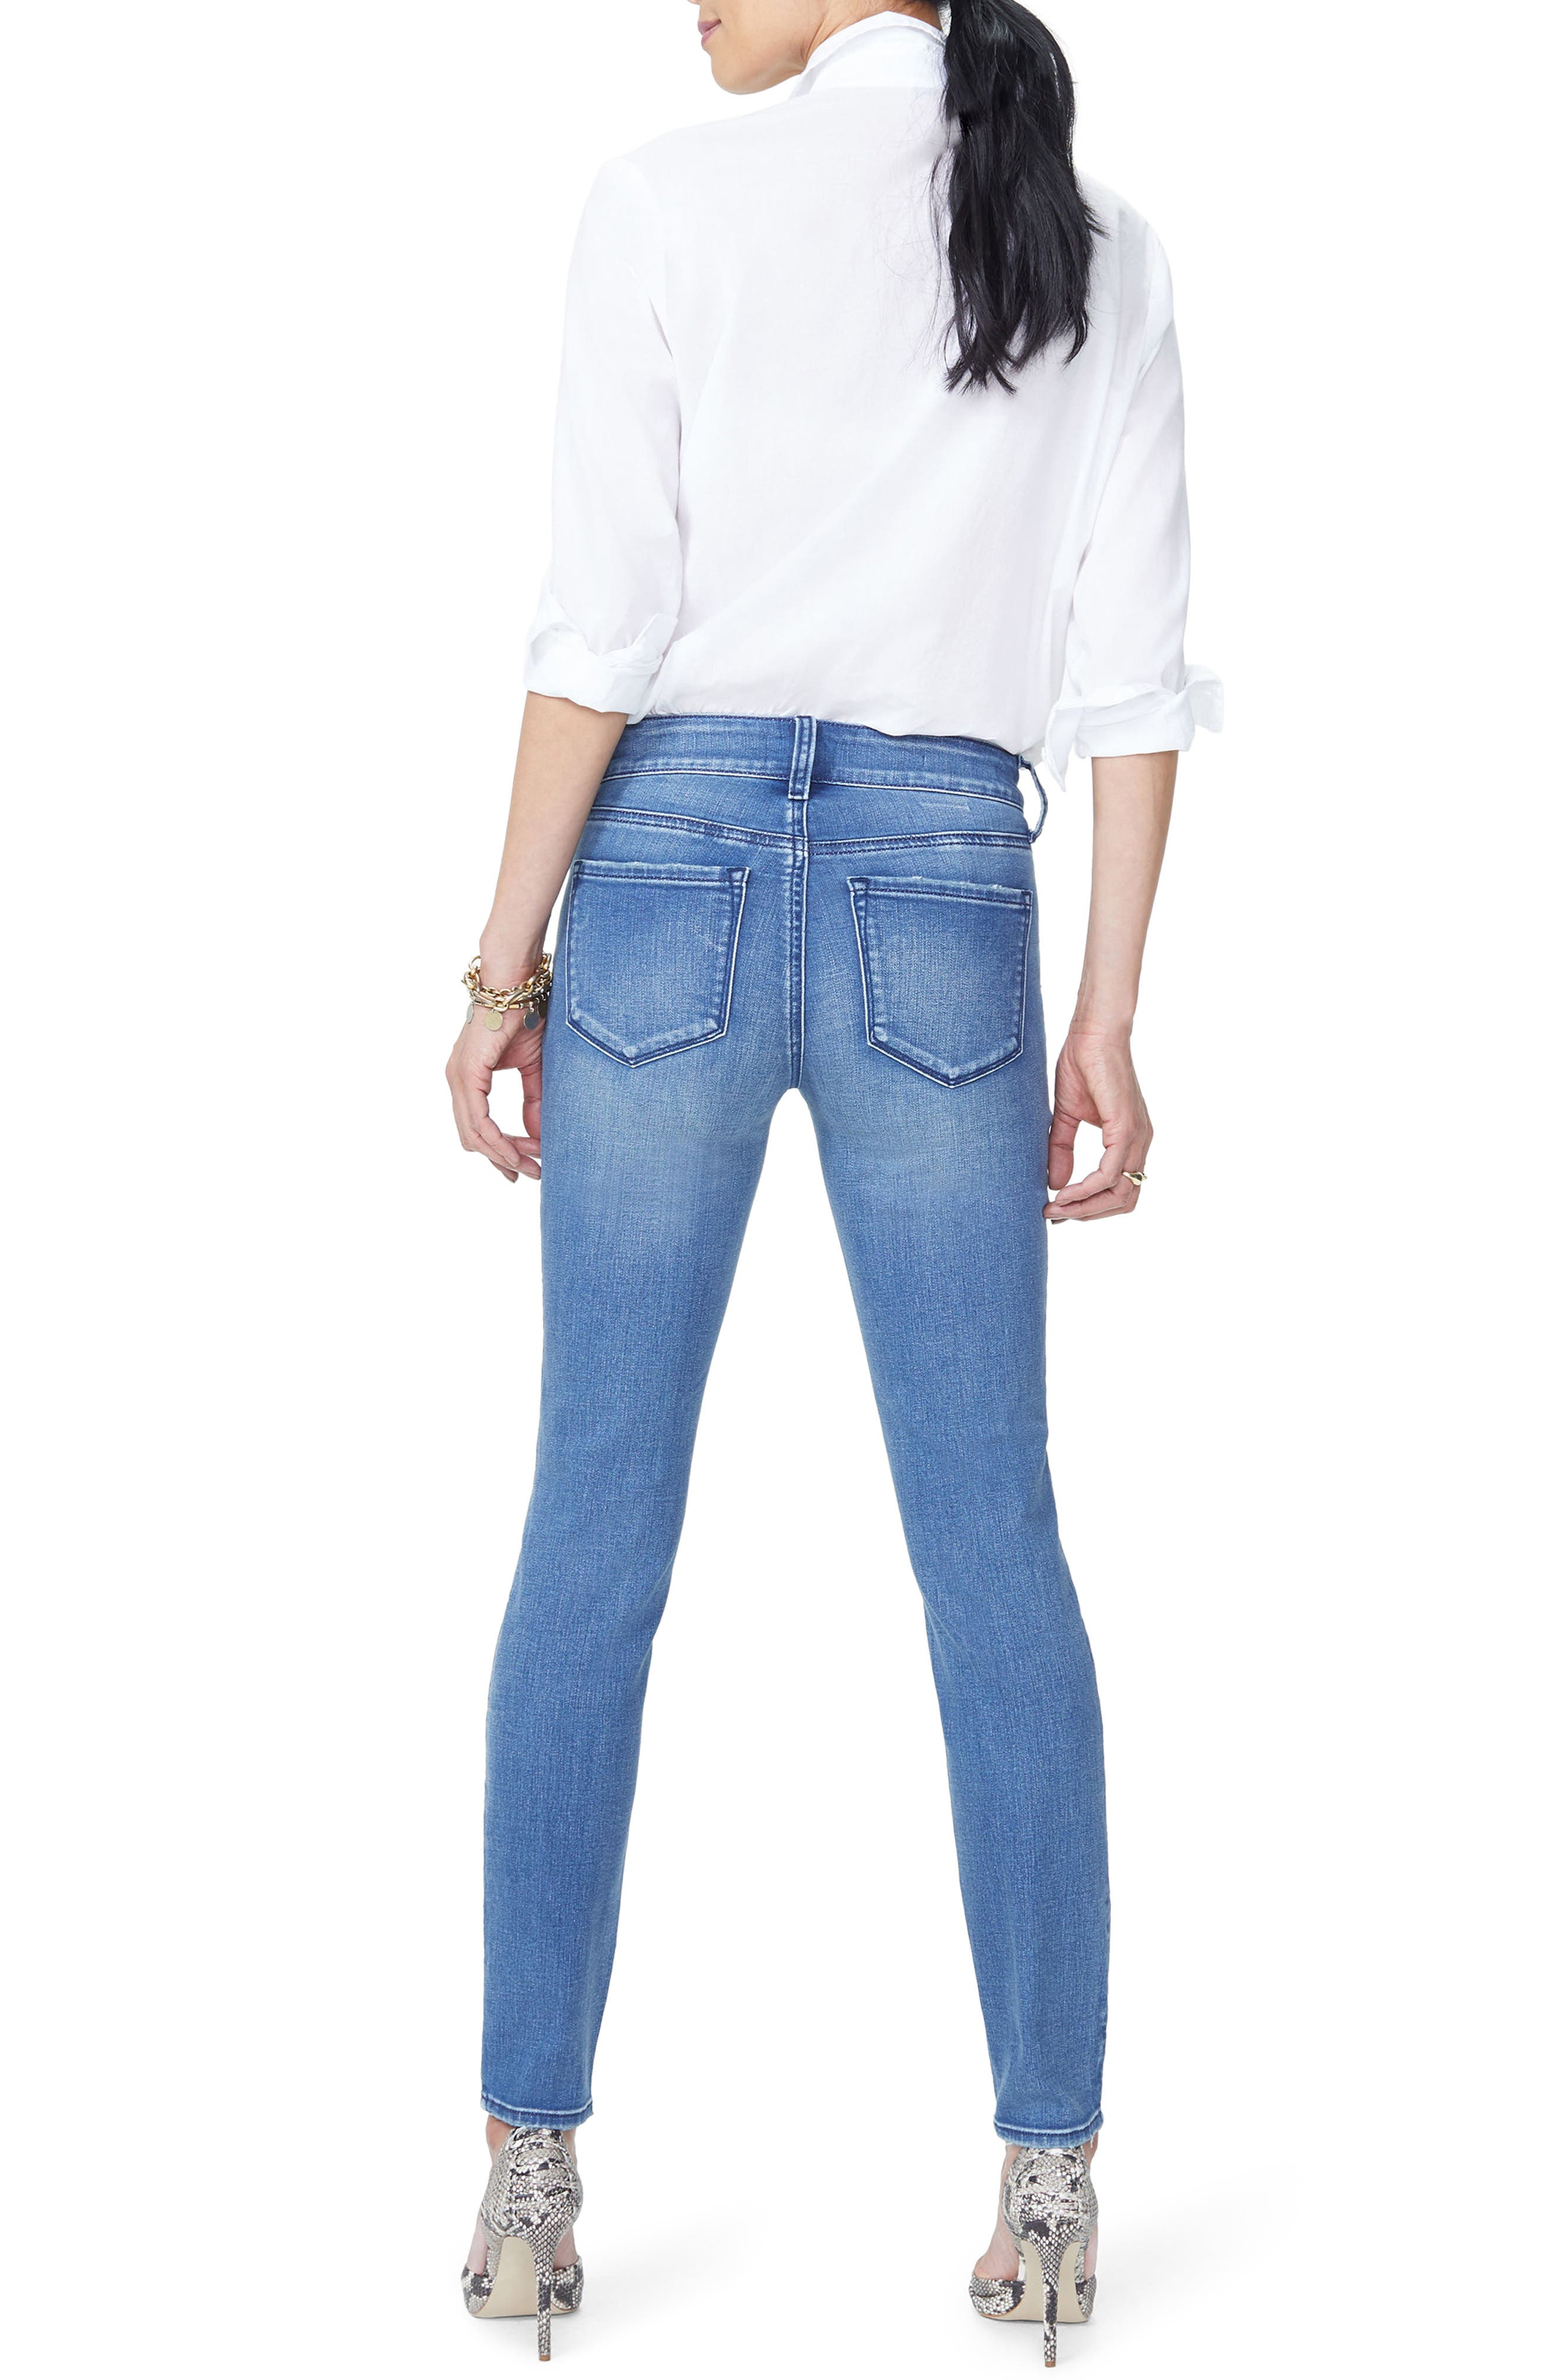 NYDJ, Ami High Waist Stretch Skinny Jeans, Alternate thumbnail 2, color, 410